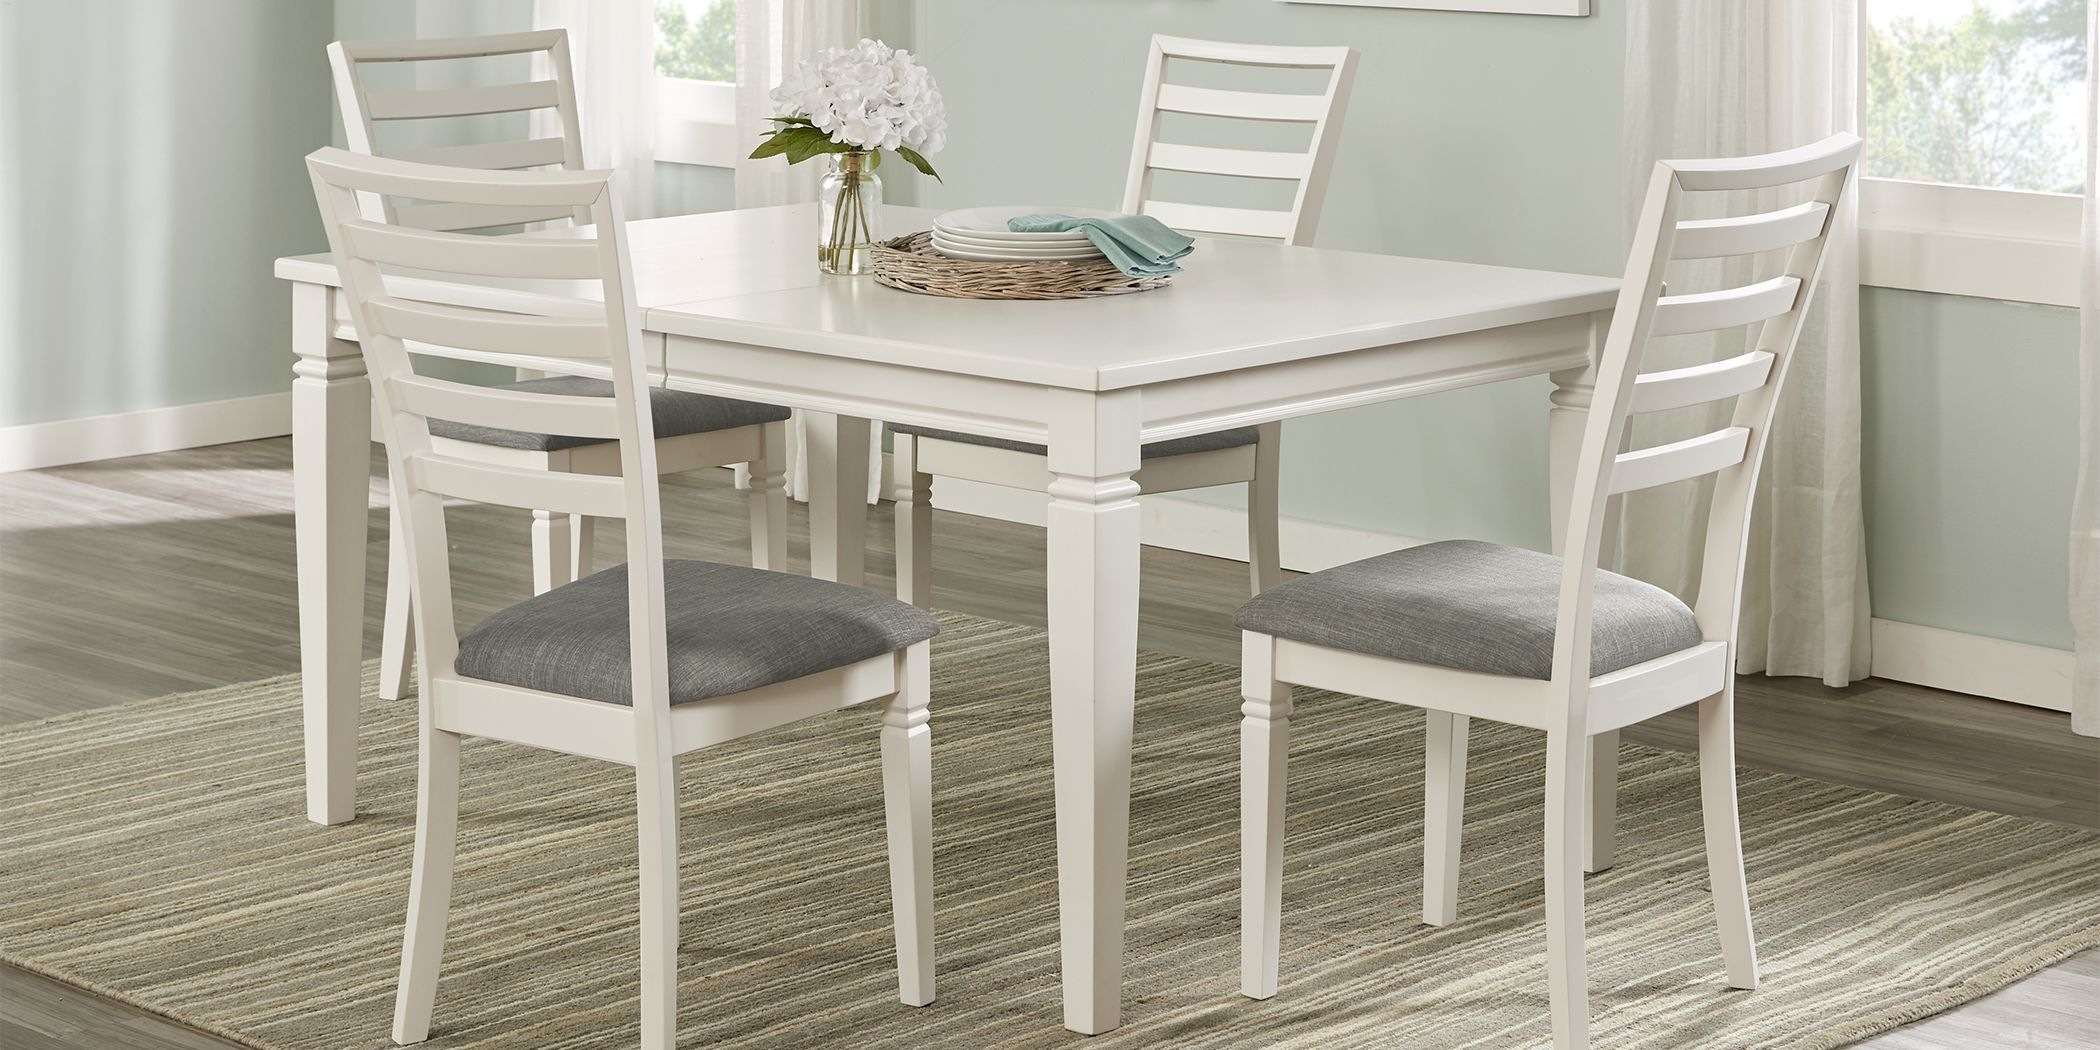 Riverdale White 5 Pc Rectangle Dining Room With Ladder Back Chairs